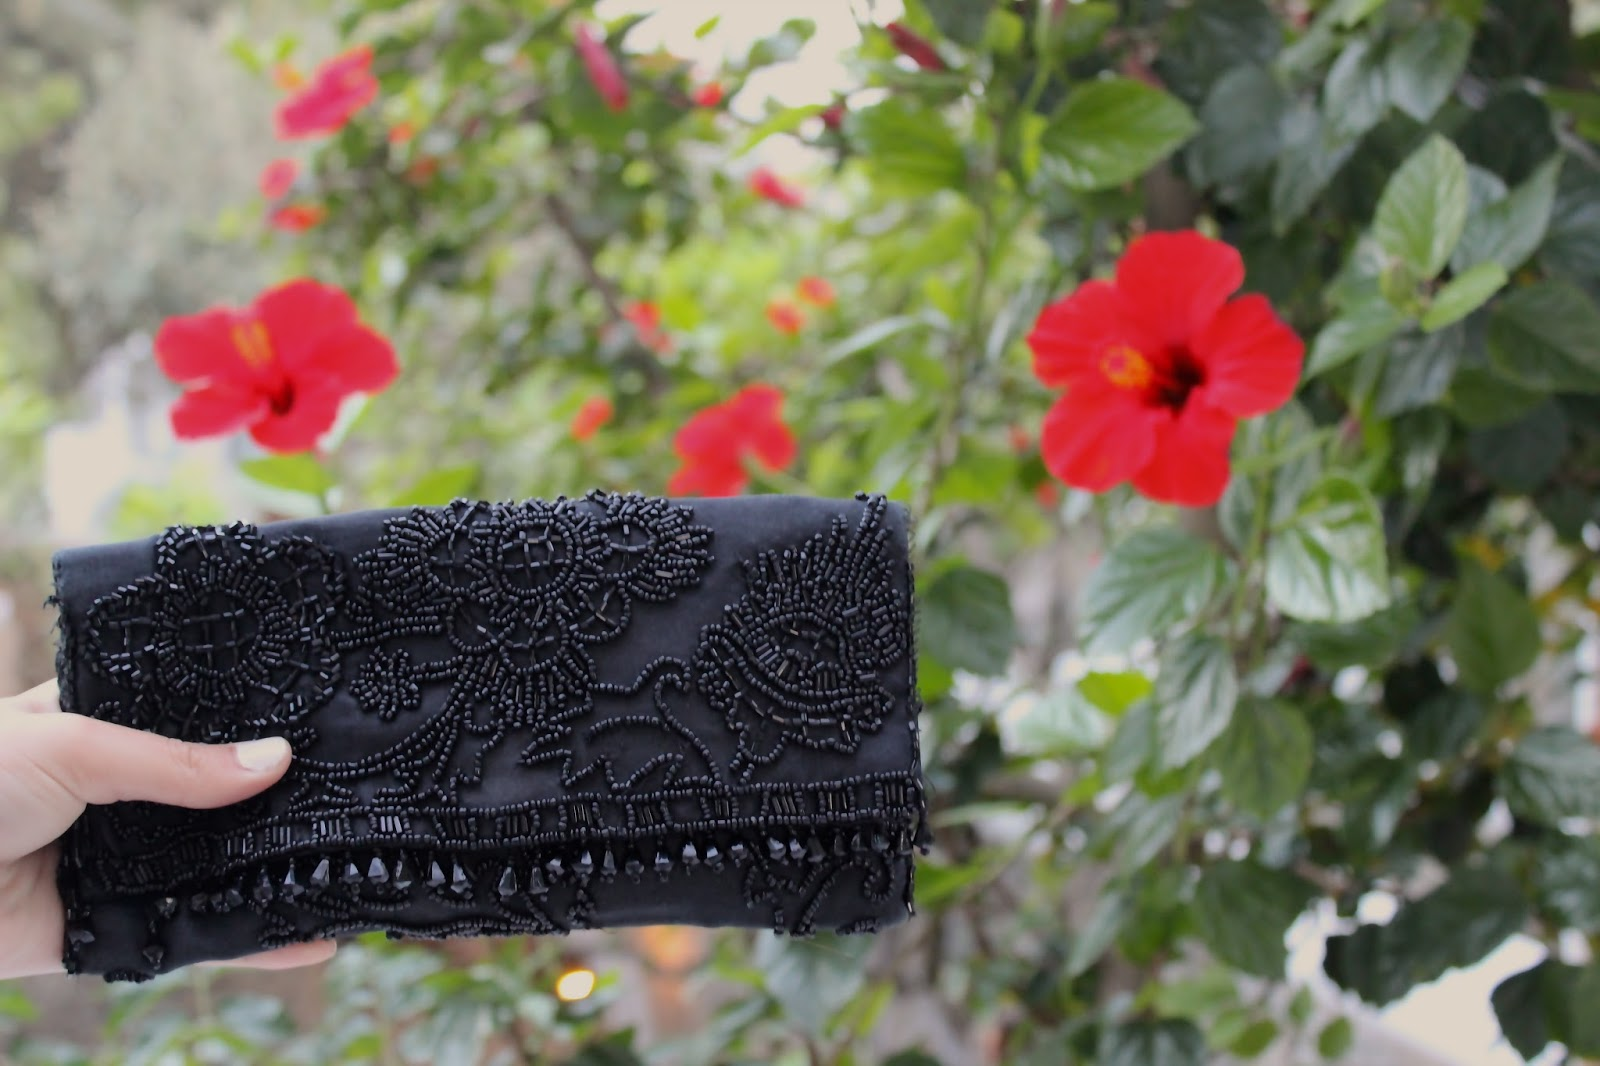 Accessorize Embellished Black Clutch - Charity shop purchase